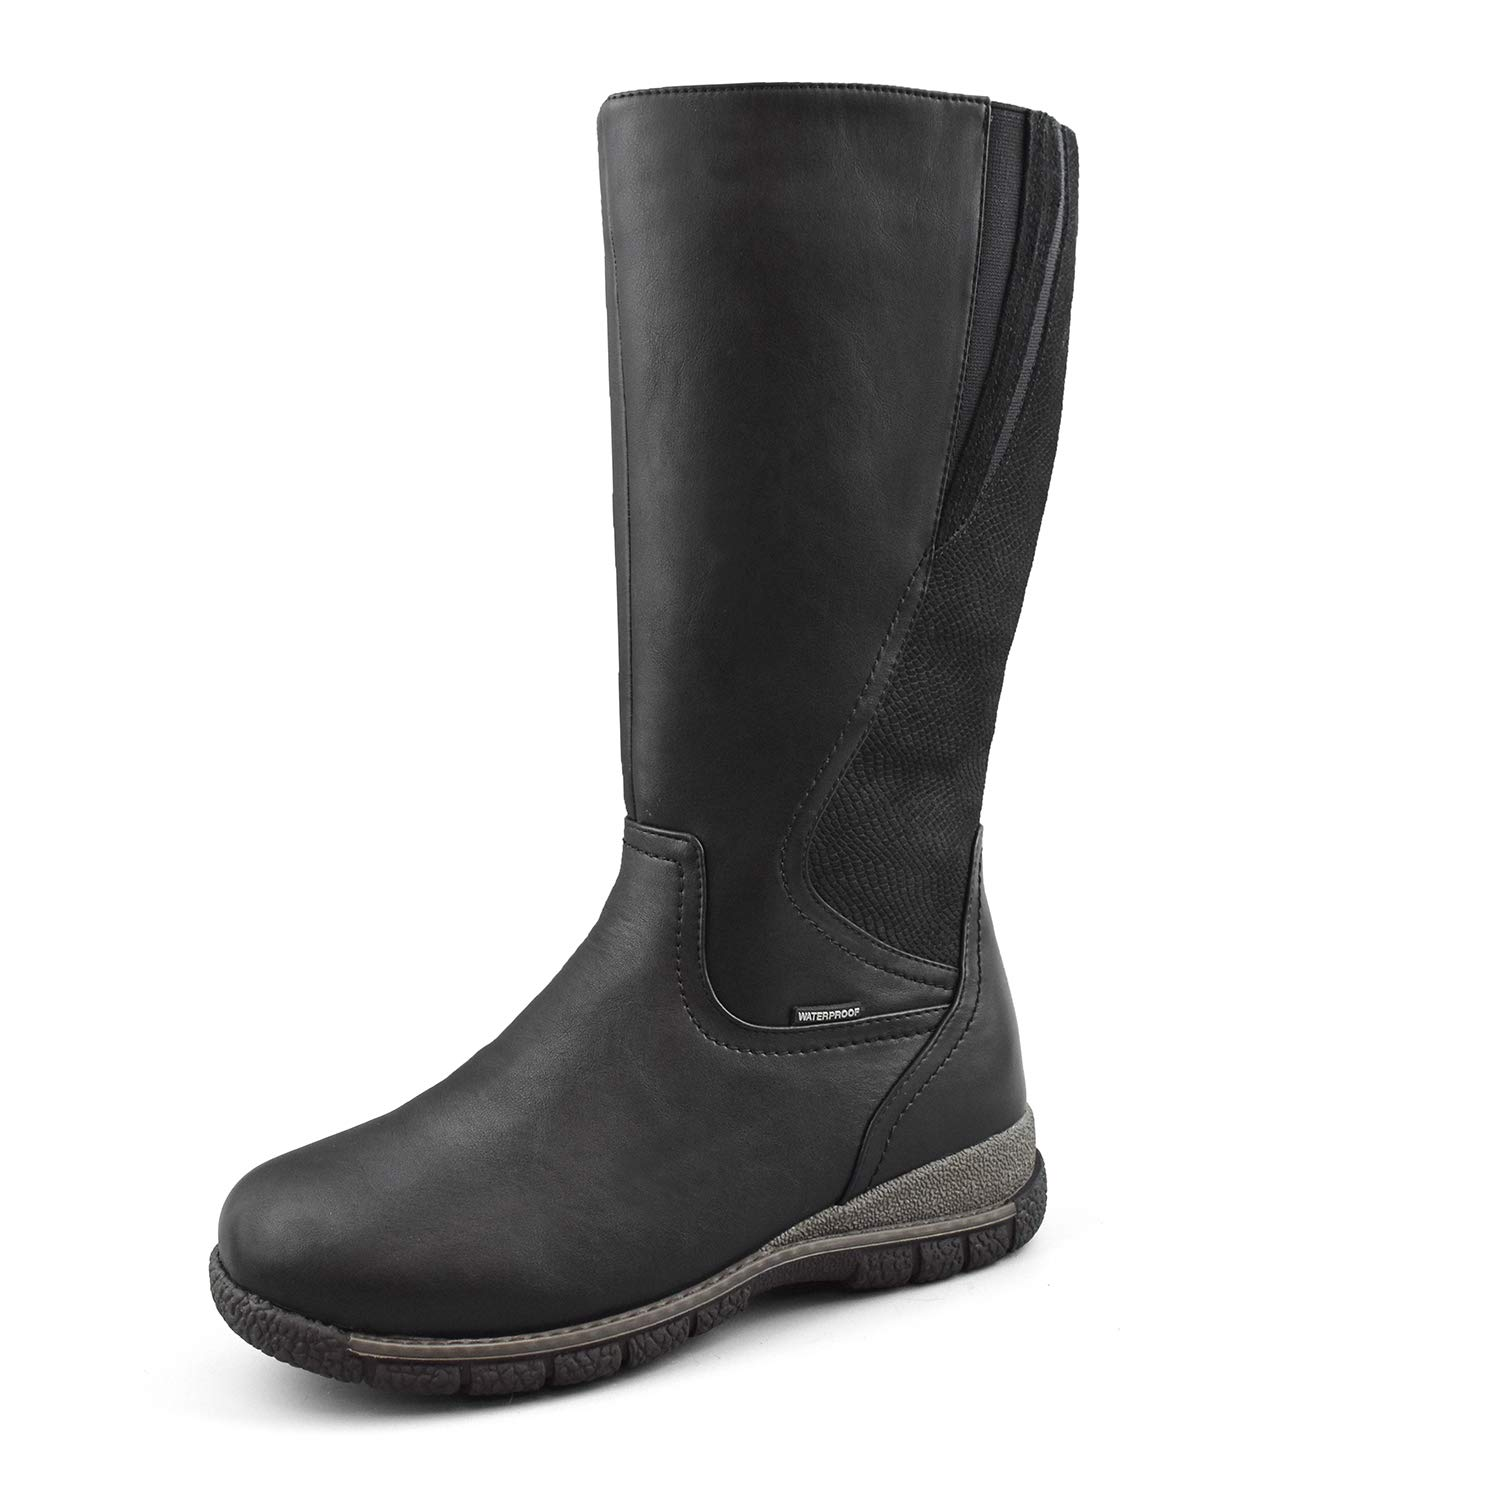 Comfy Moda Women's Waterproof Wool-Lined Cold Weather Boots Alberta